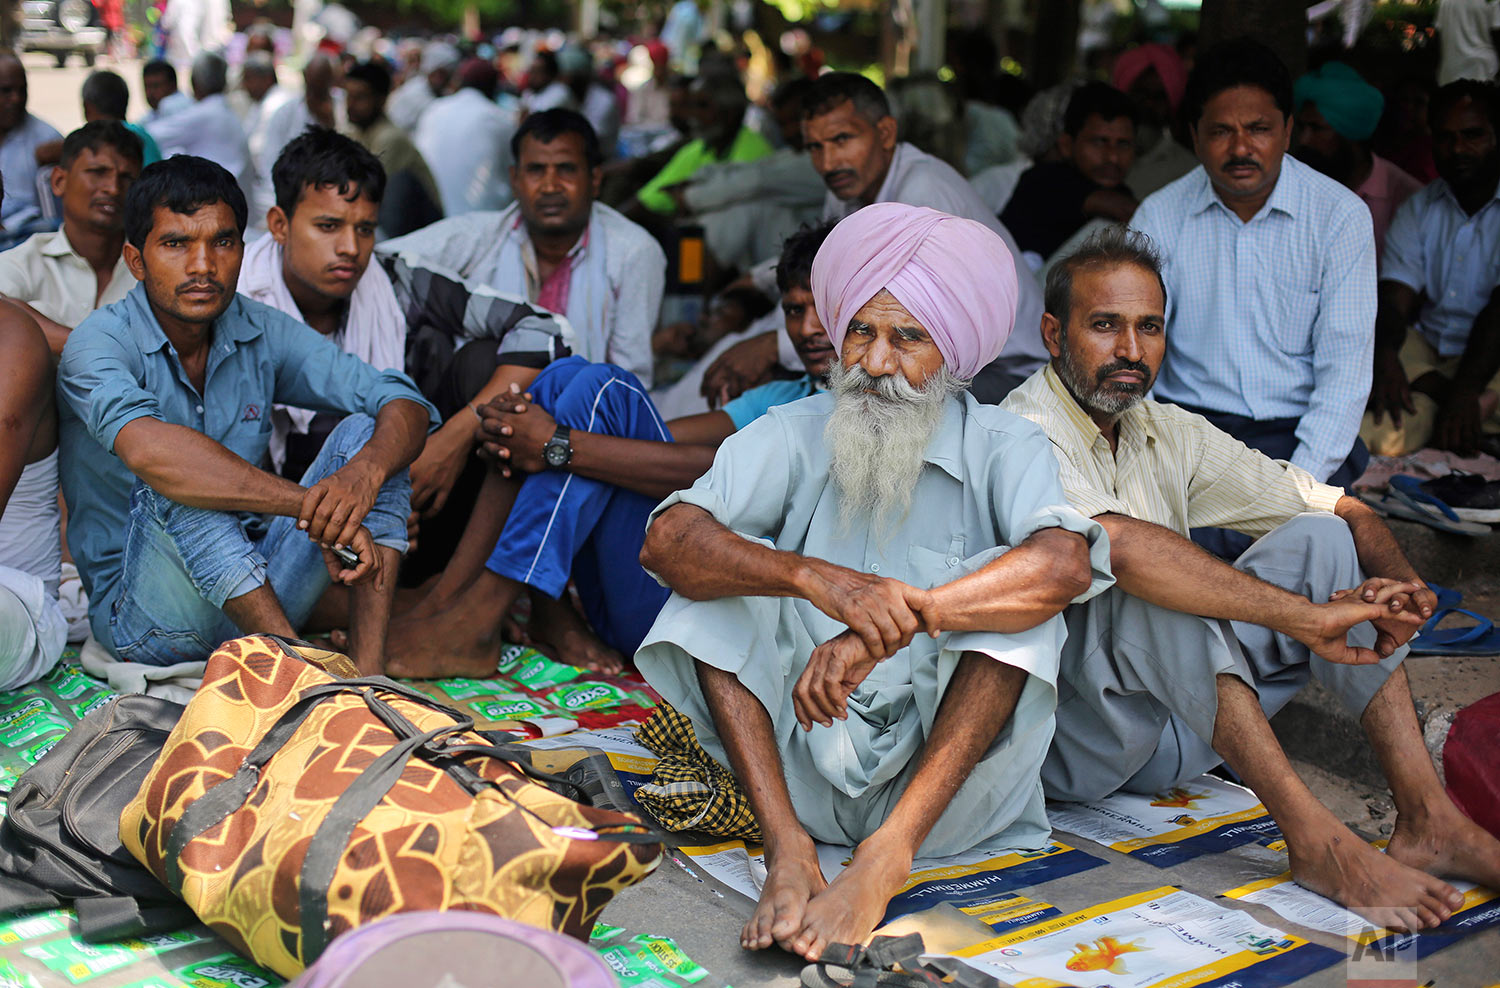 Supporters of the Dera Sacha Sauda sect squat in a public park near an Indian court in Panchkula, India, Thursday, Aug. 24, 2017.  (AP Photo/Altaf Qadri)